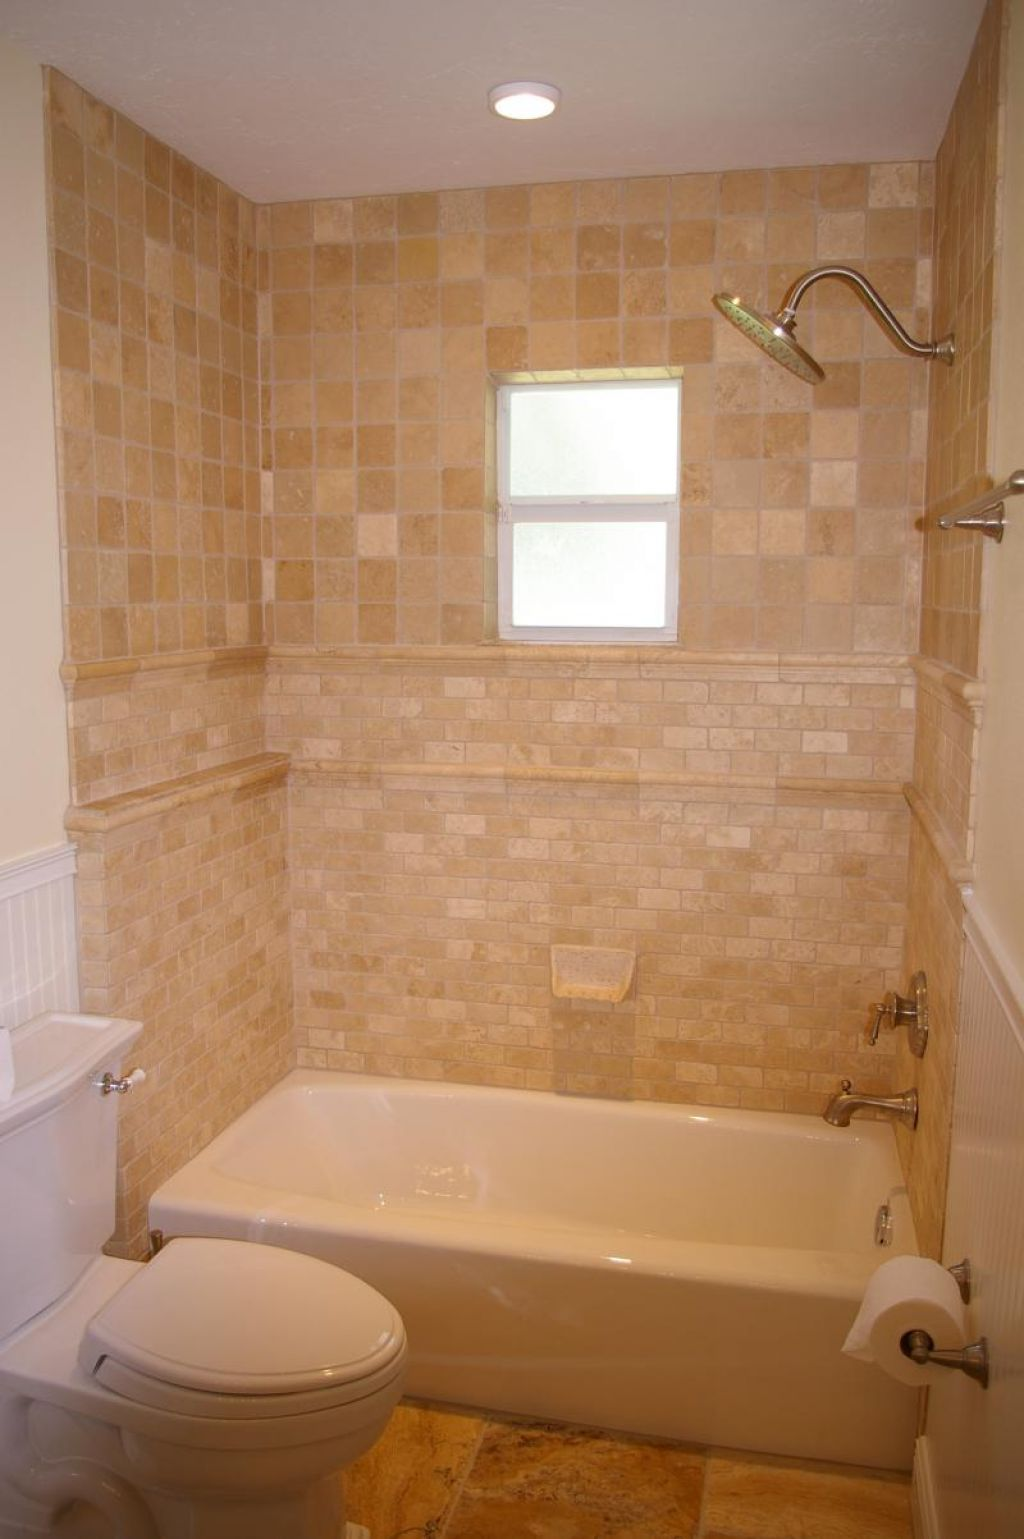 30 shower tile ideas on a budget for Bathroom tub and shower tile ideas